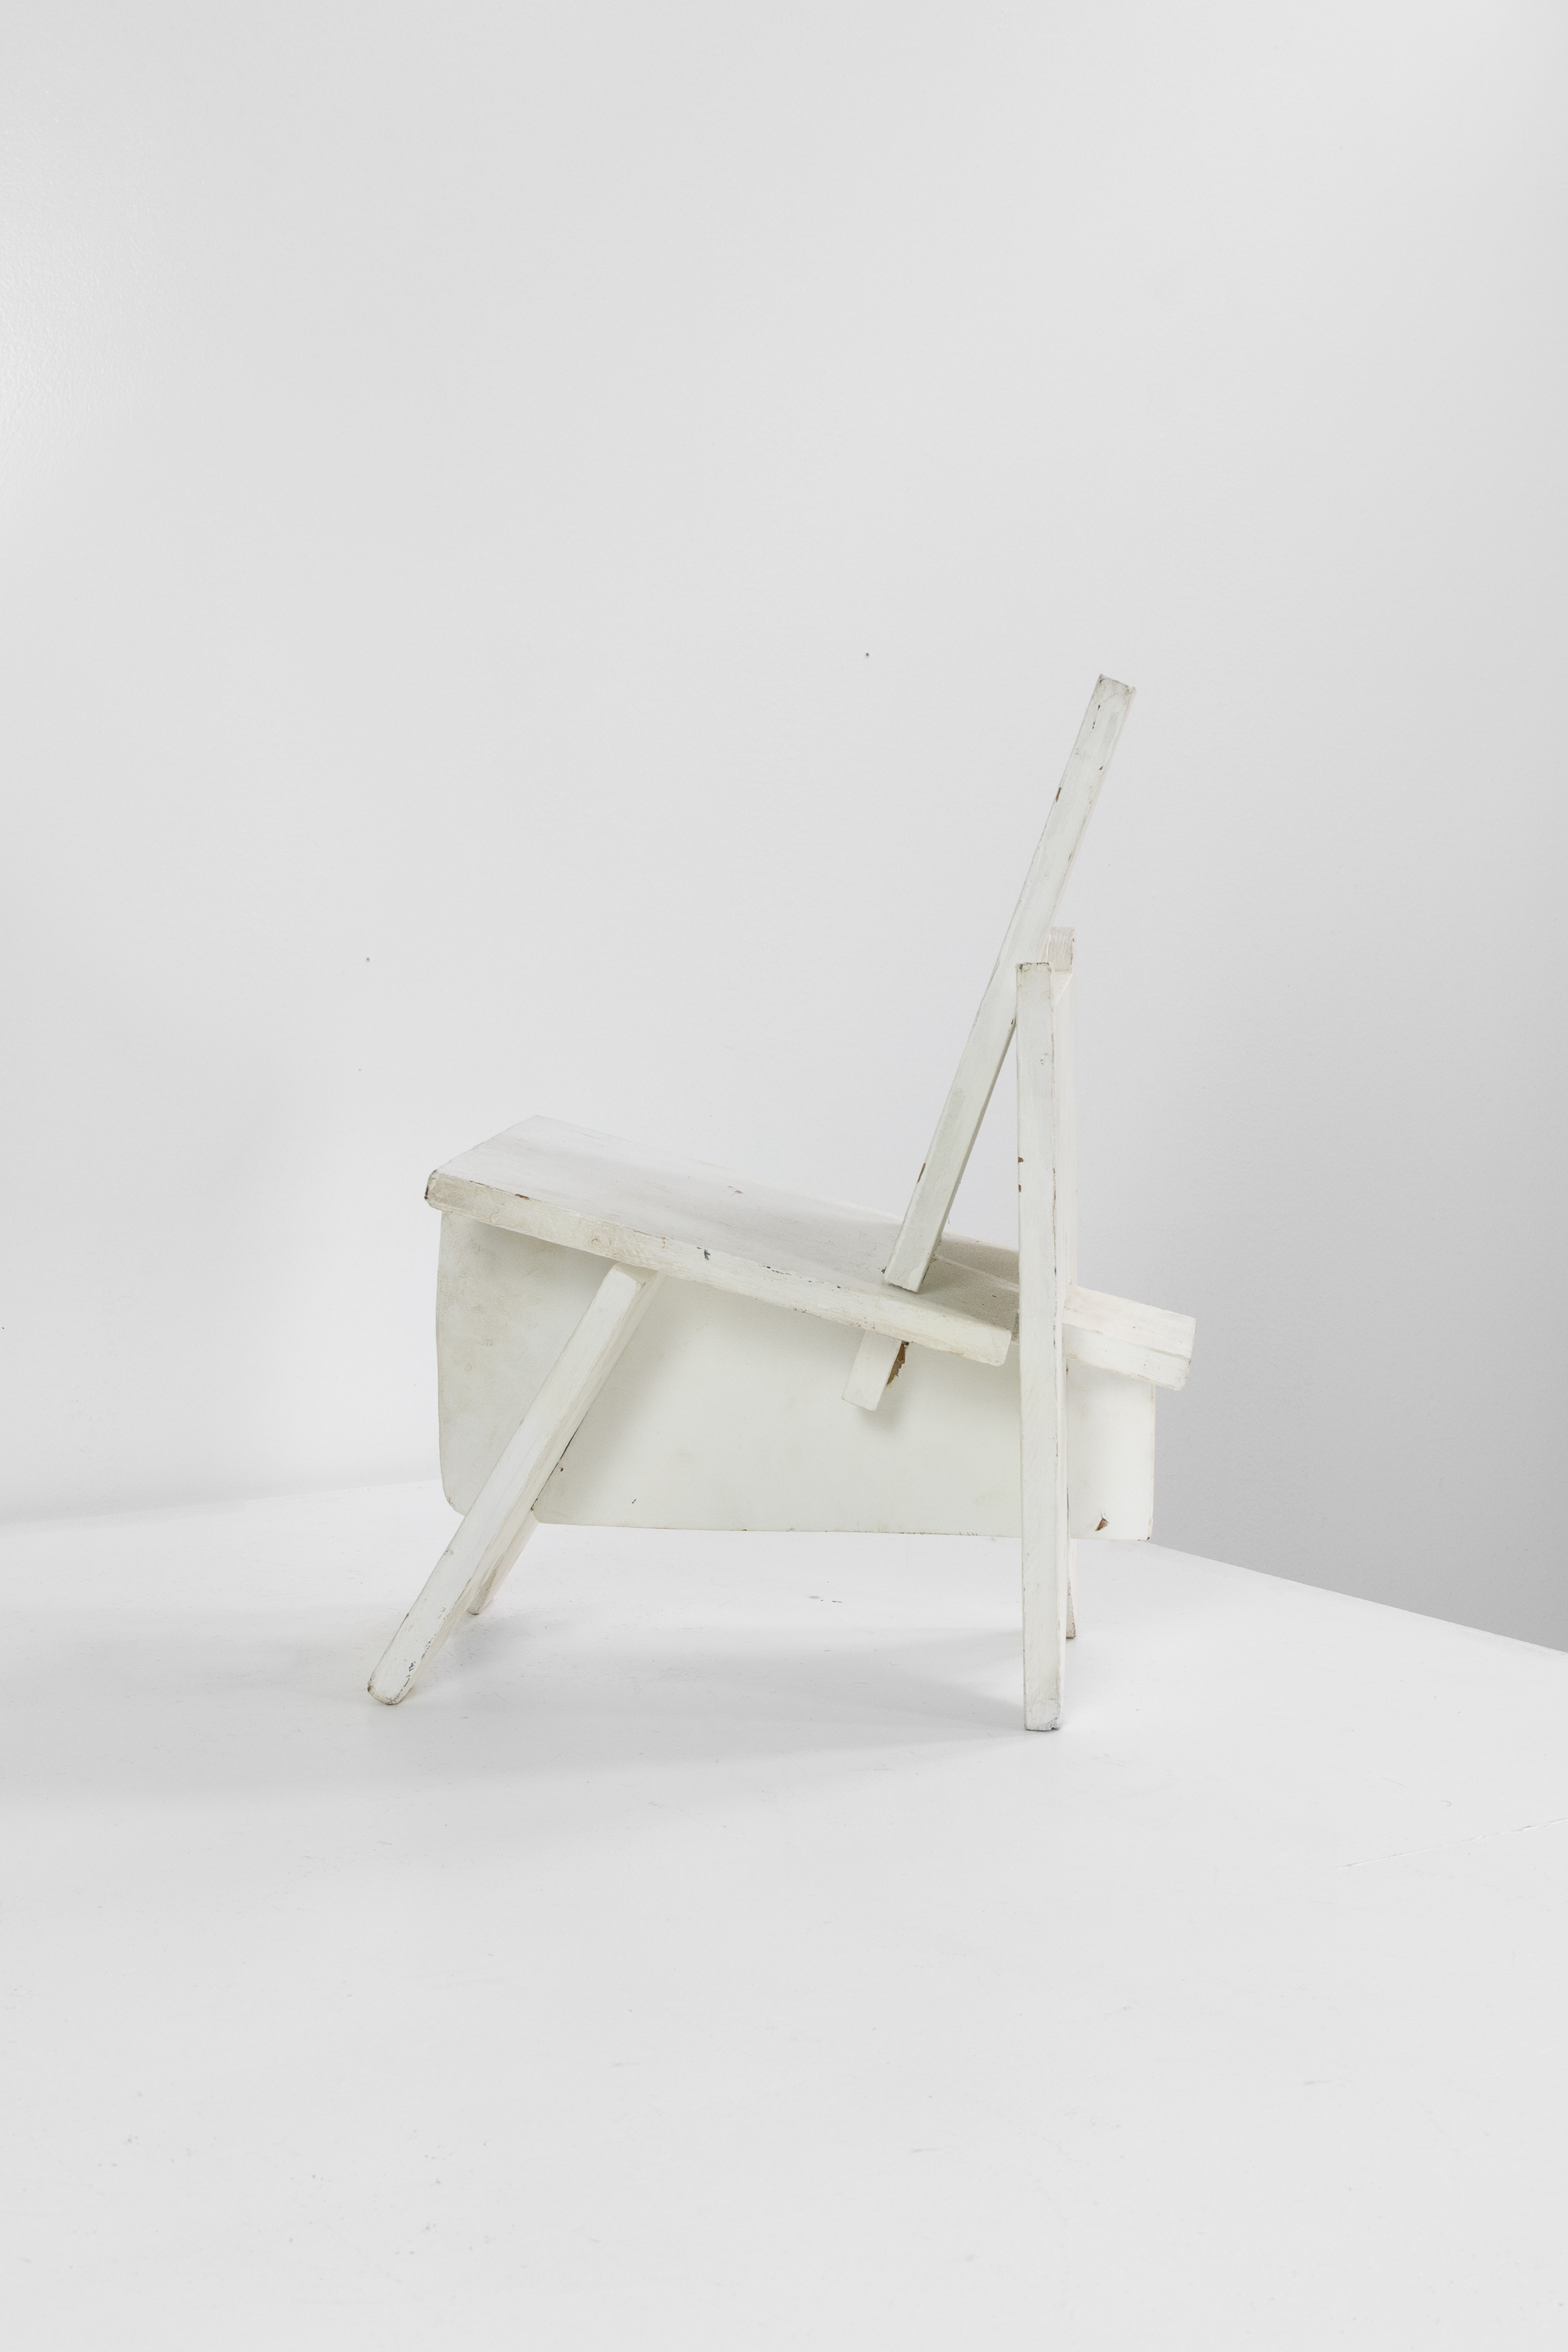 Constructivist Painted Plywood Child's Chair